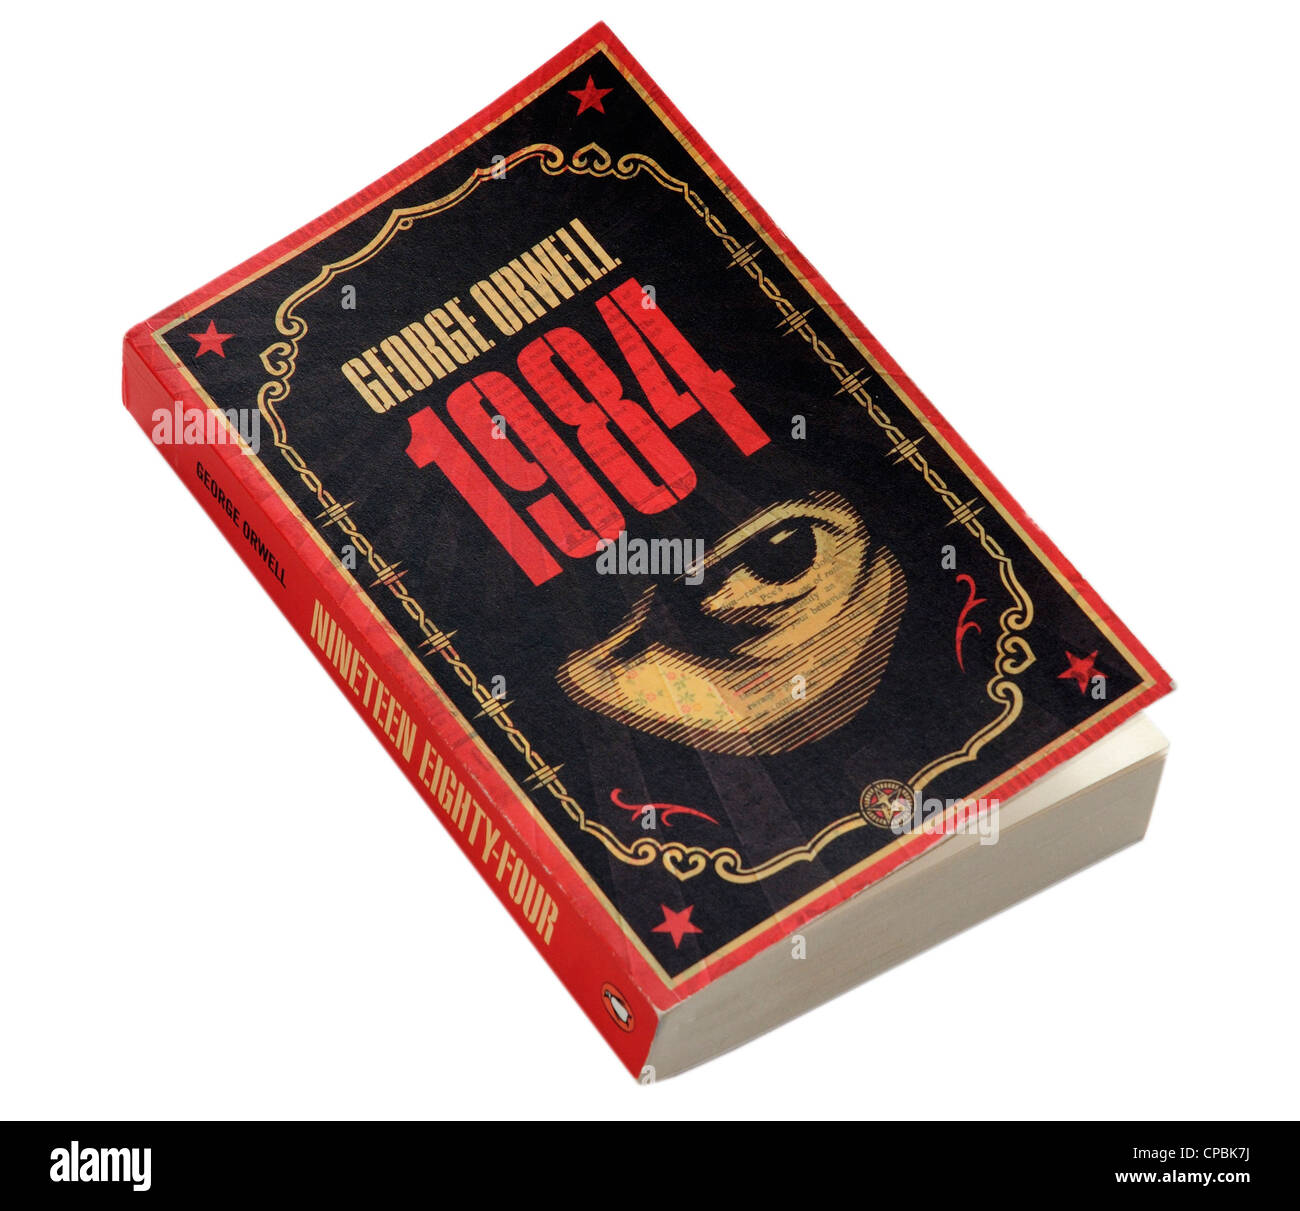 1984 by George Orwell Stock Photo